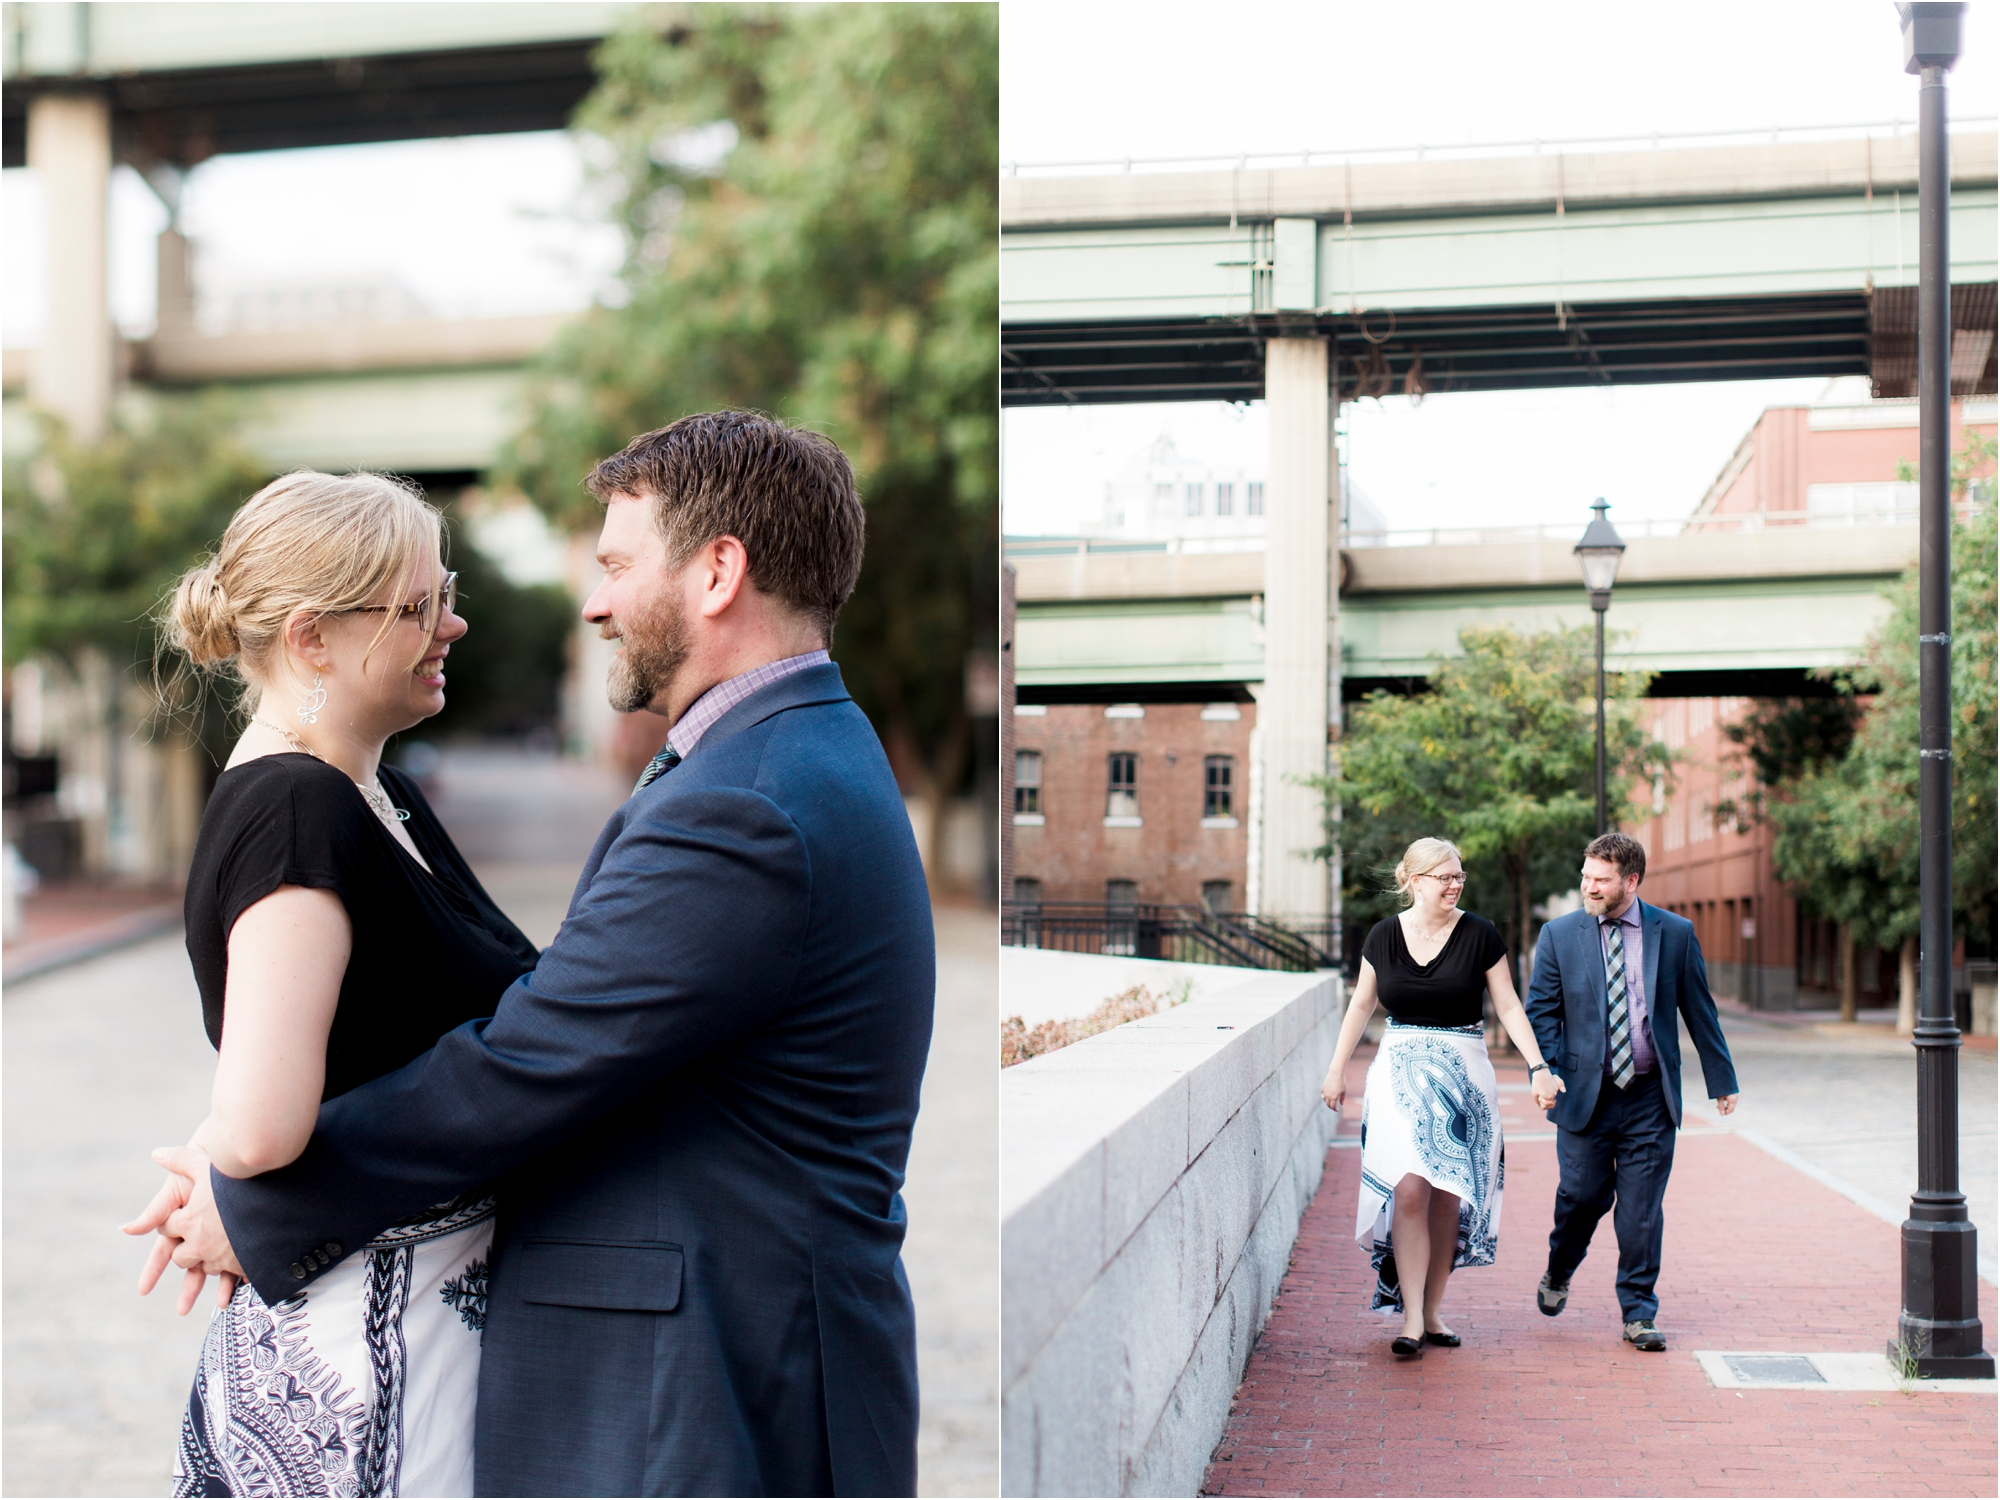 james-caroline-downtown-richmond-virginia-engagement_0002.jpg